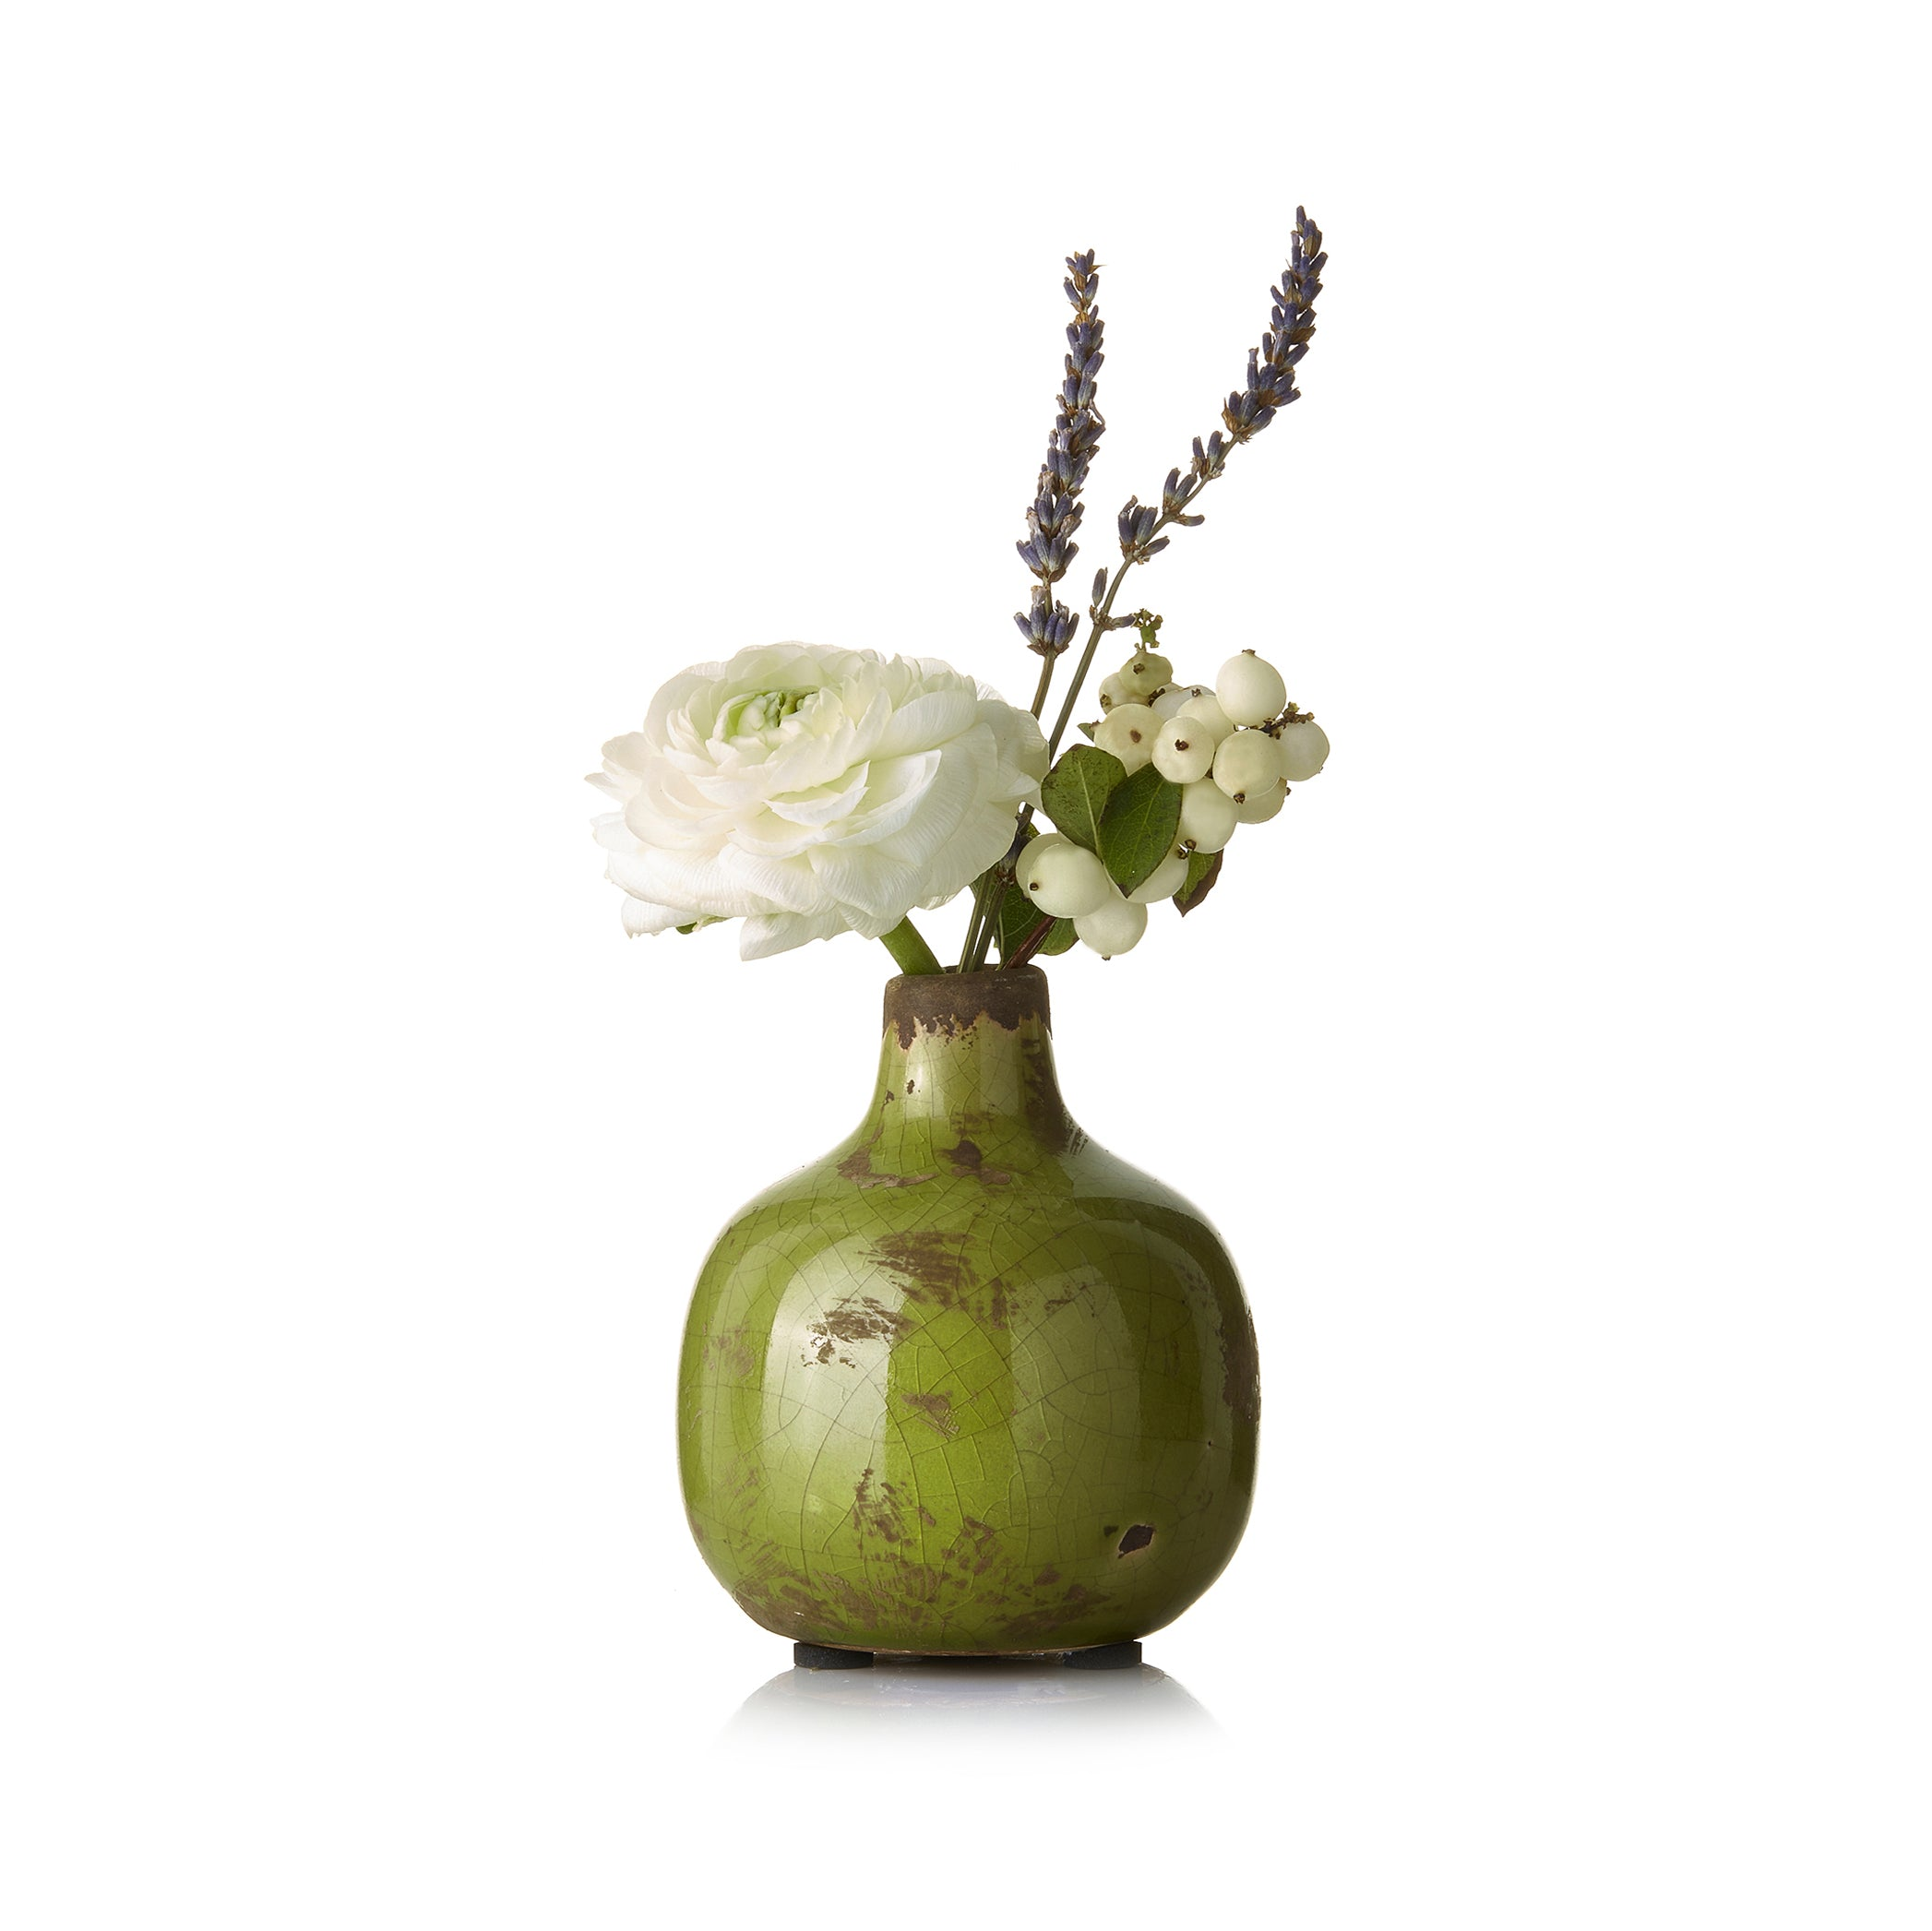 Ceramic Vase in Green